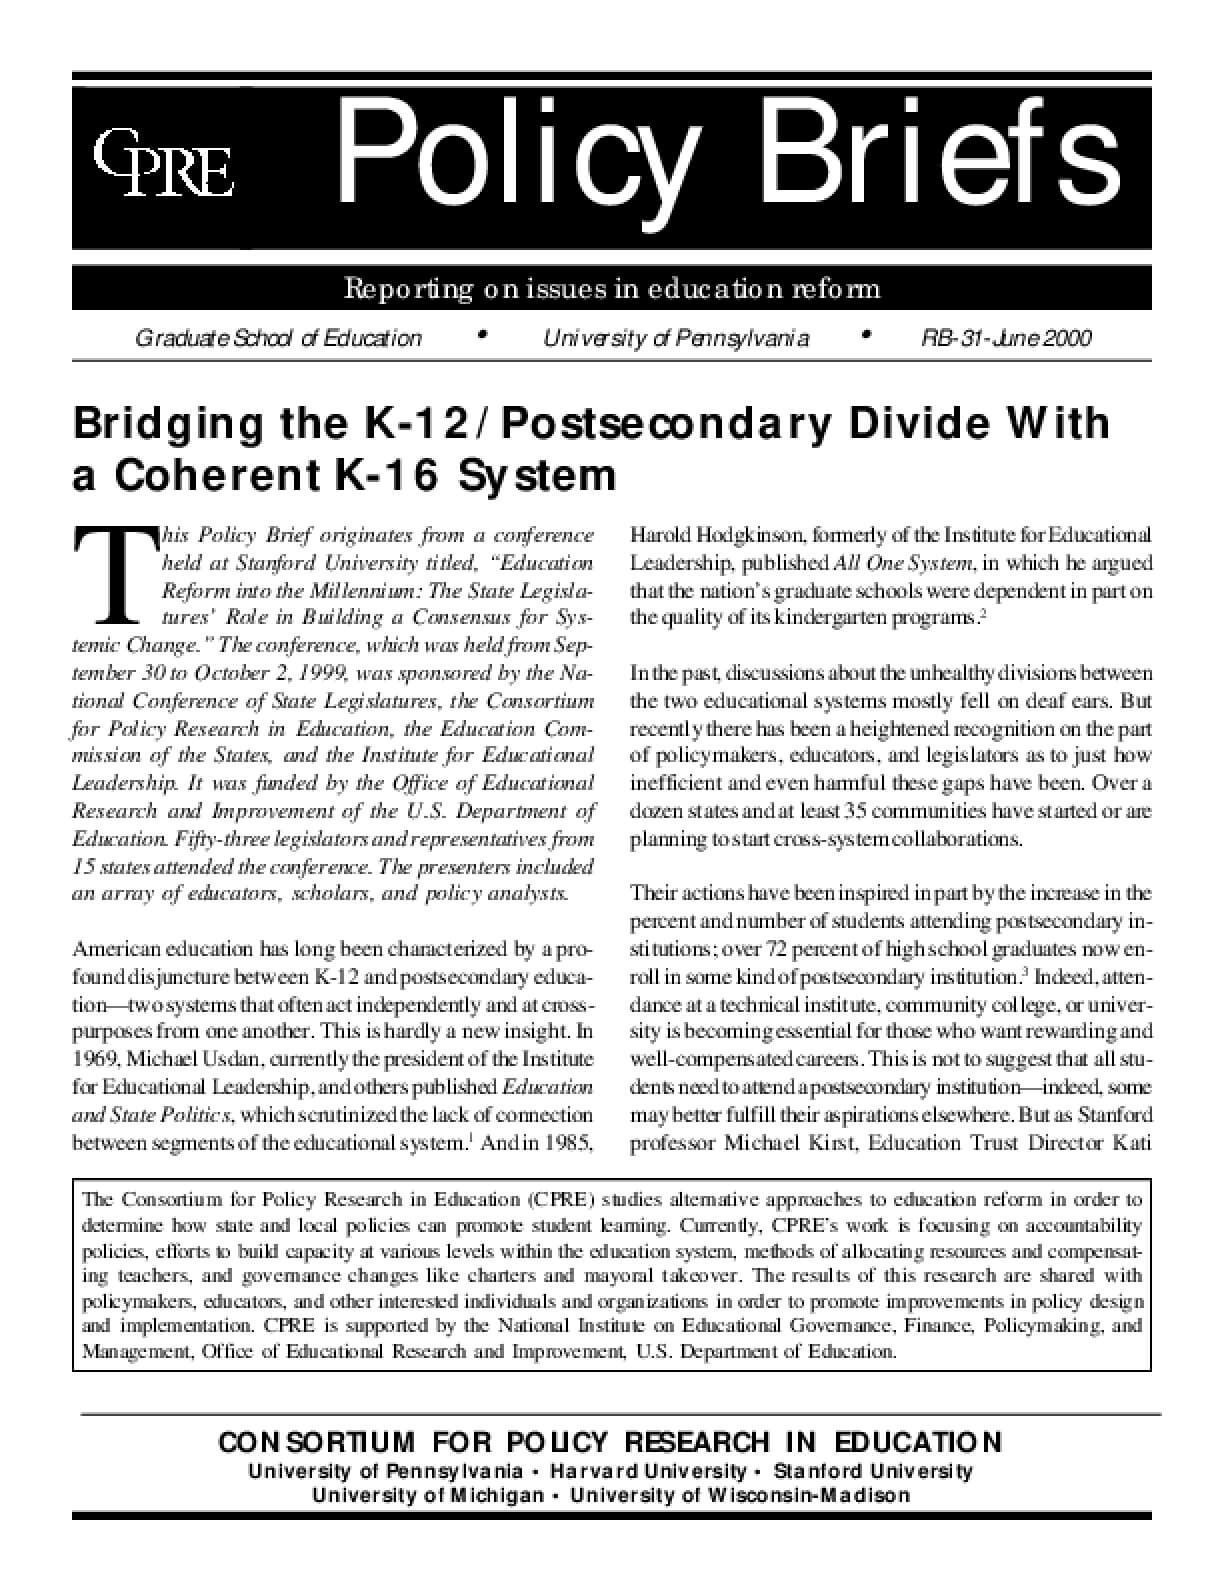 Bridging the K-12/Postsecondary Divide With a Coherent K-16 System